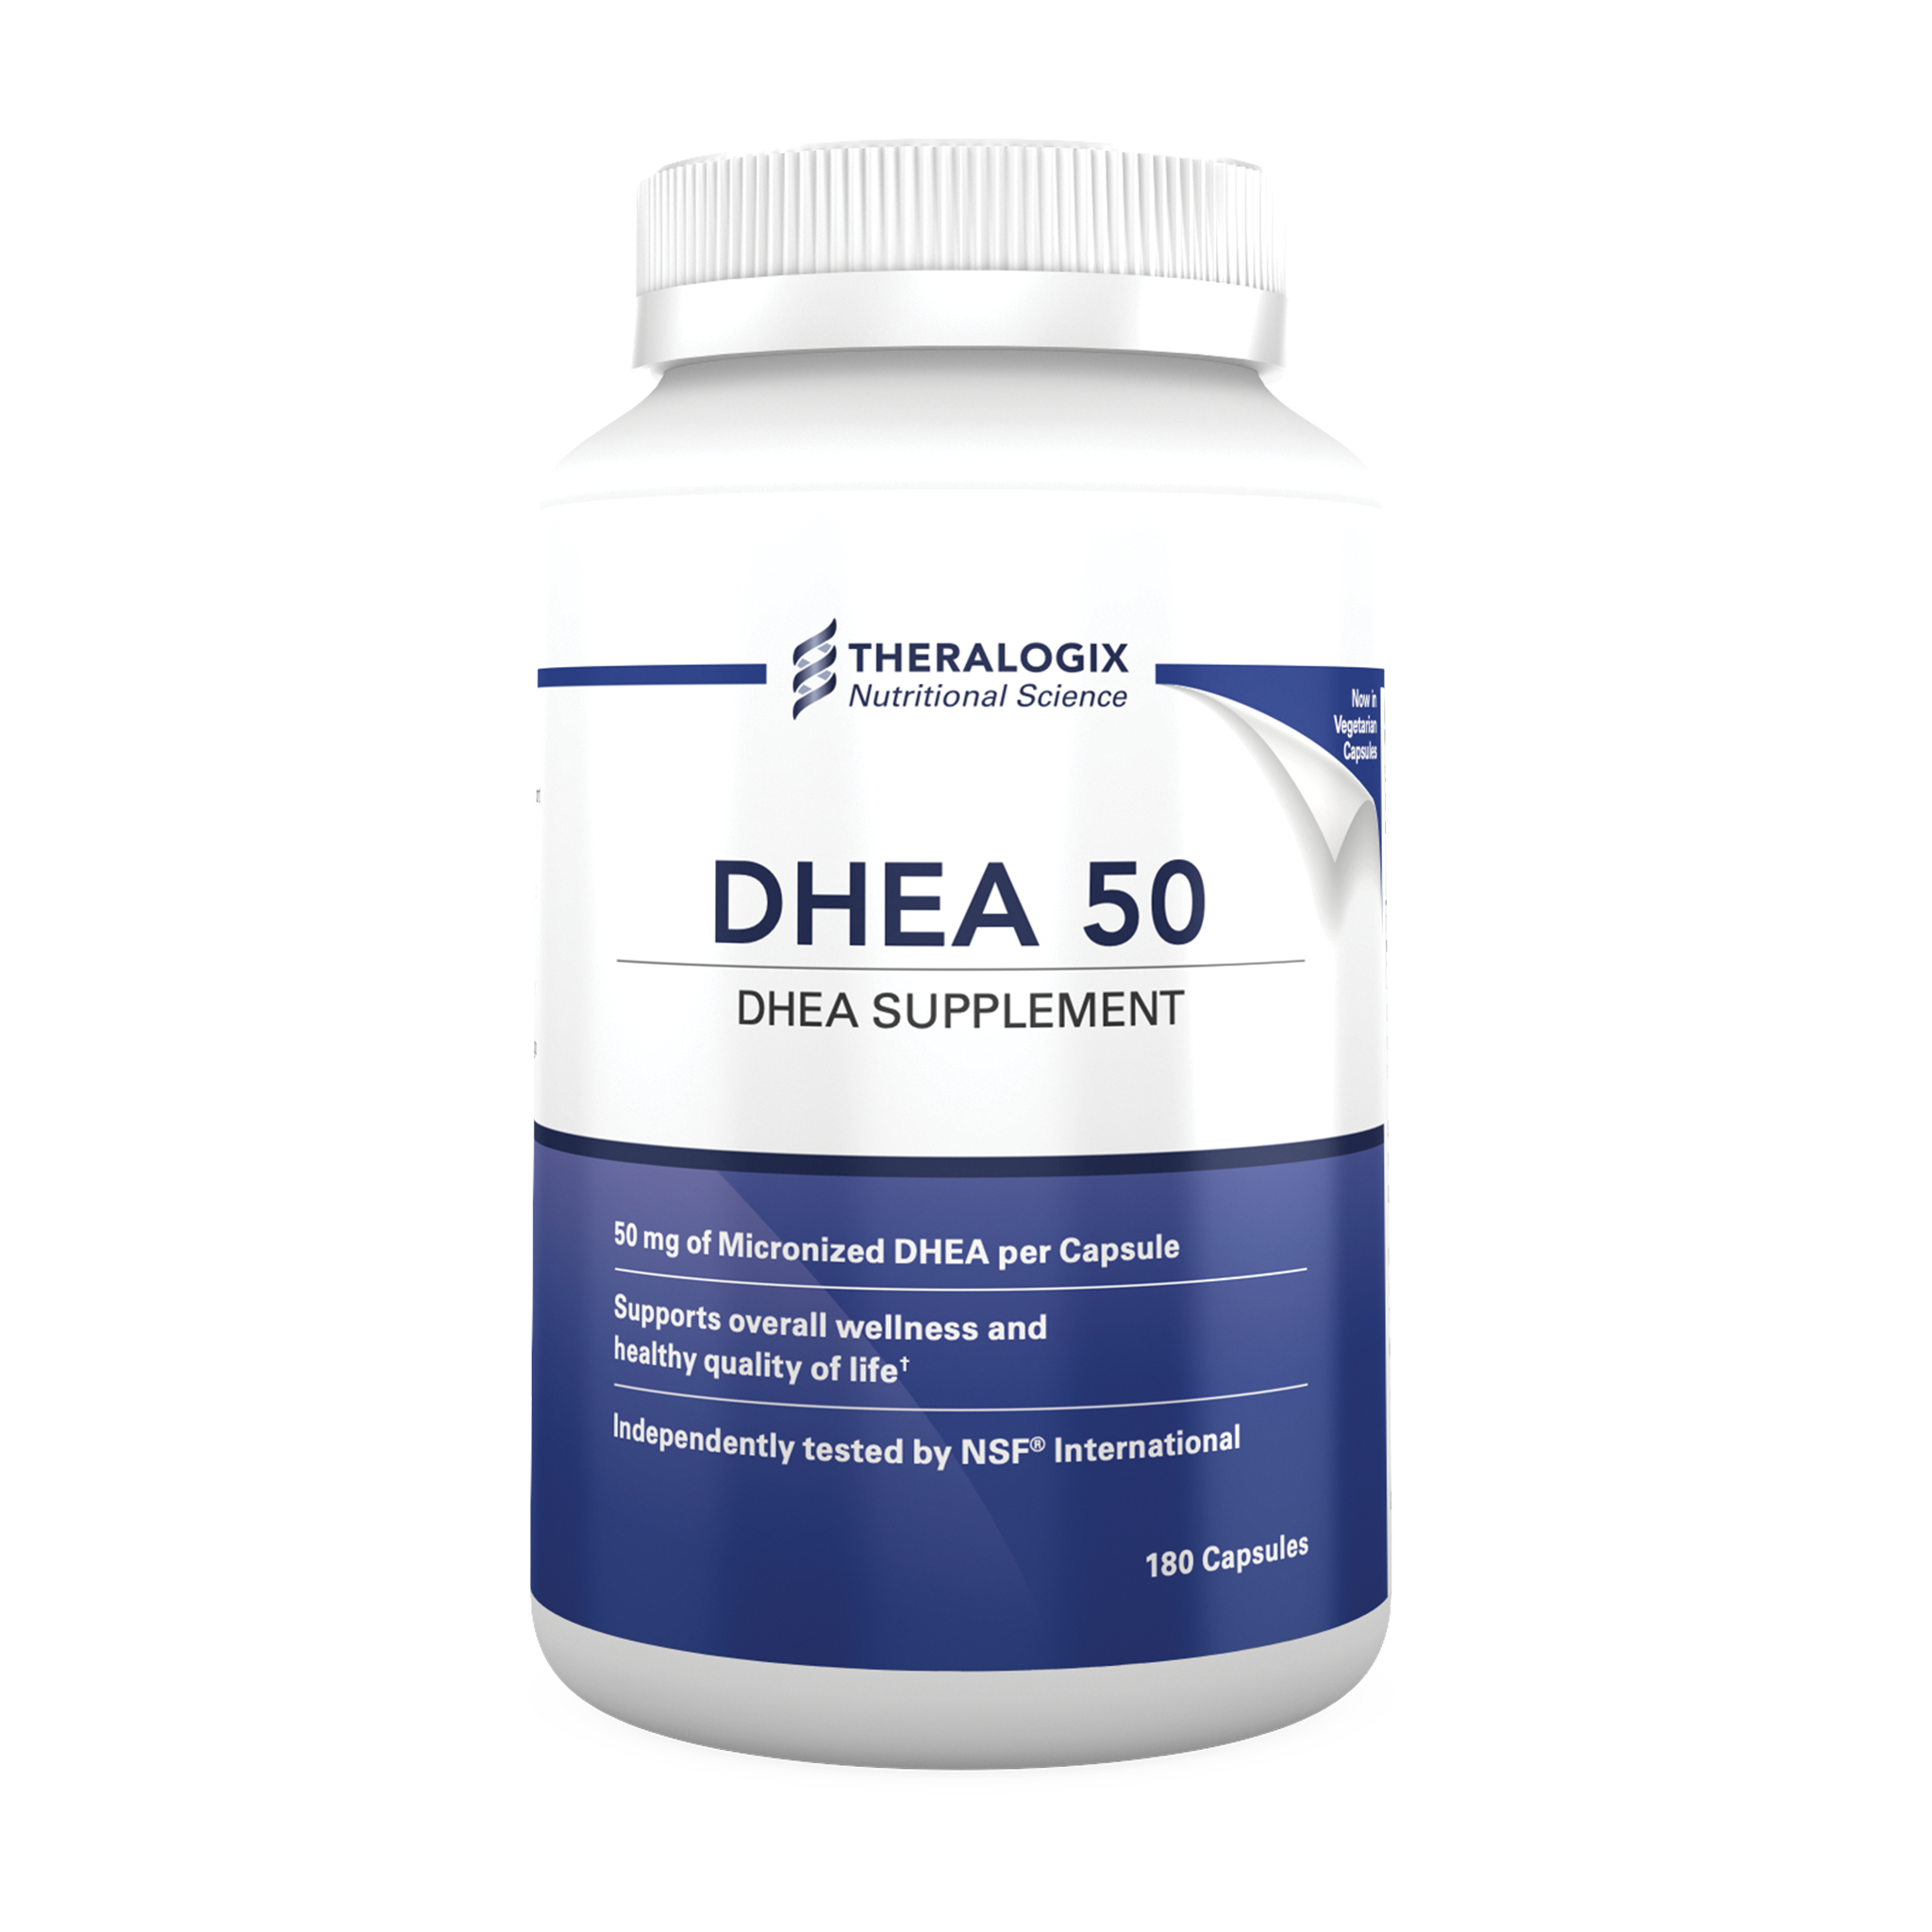 A pharmaceutical-grade DHEA supplement containing 50 mg of micronized DHEA per capsule formulated to support bone health.